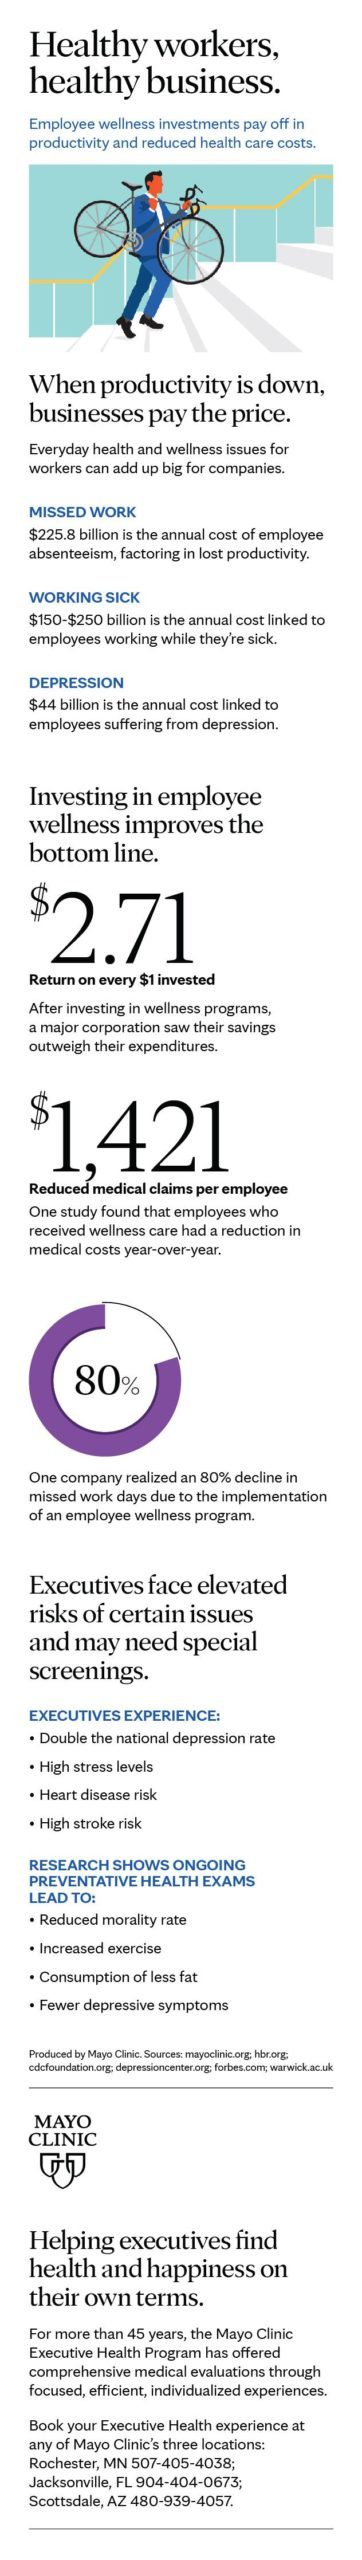 infographic:-employee-wellness-and-executive-health